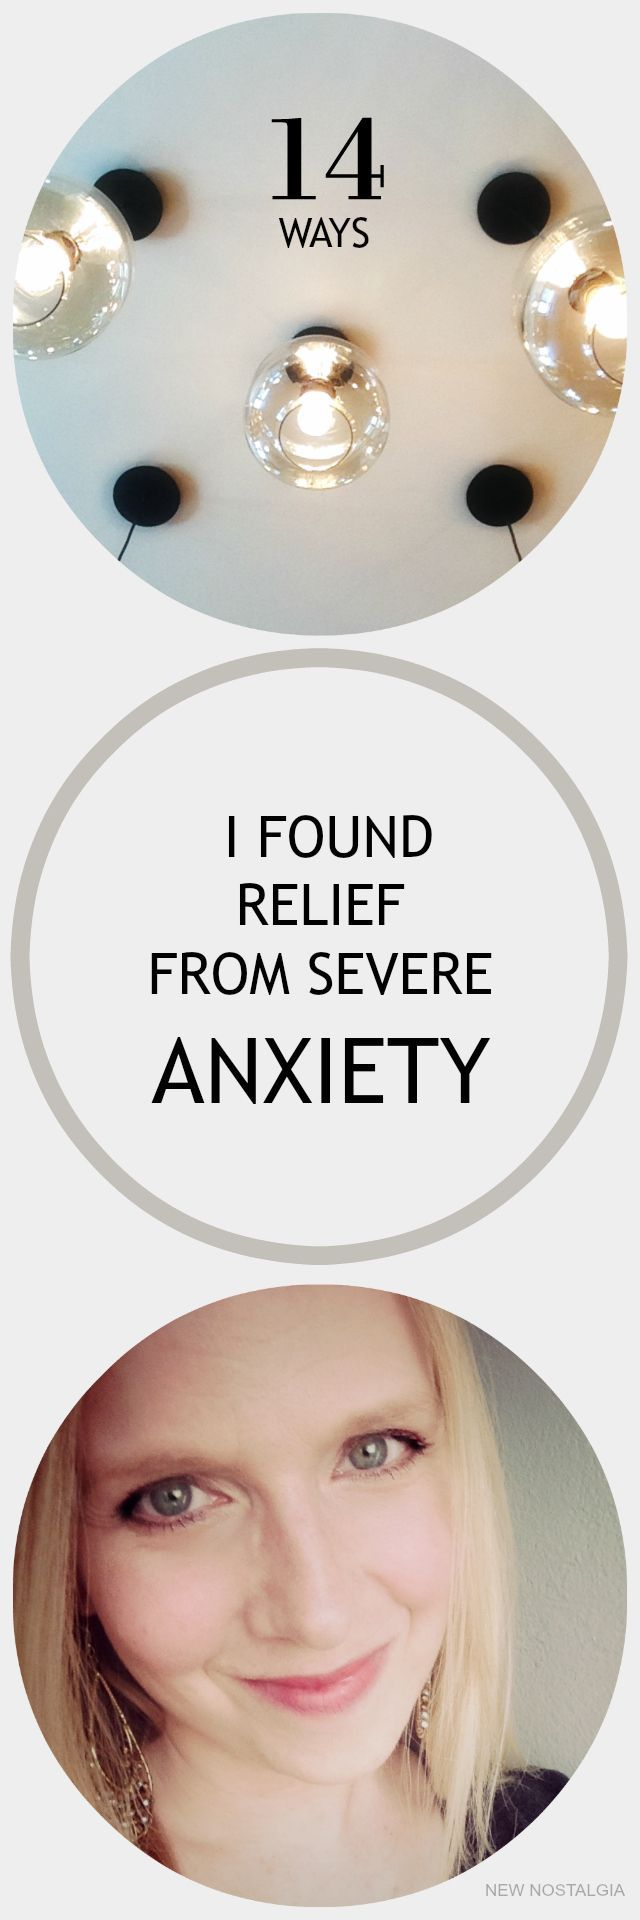 """14 Ways I Found Relief From Severe Anxiety via New Nostalgia """"When you want to just curl up in a ball and stay in bed all day please know that there is hope. When your hearts feels like it is pounding out of your chest and you really don't know why, know that there is hope. When you feel alone, know that you are not."""" #anxiety #mentalhealth"""